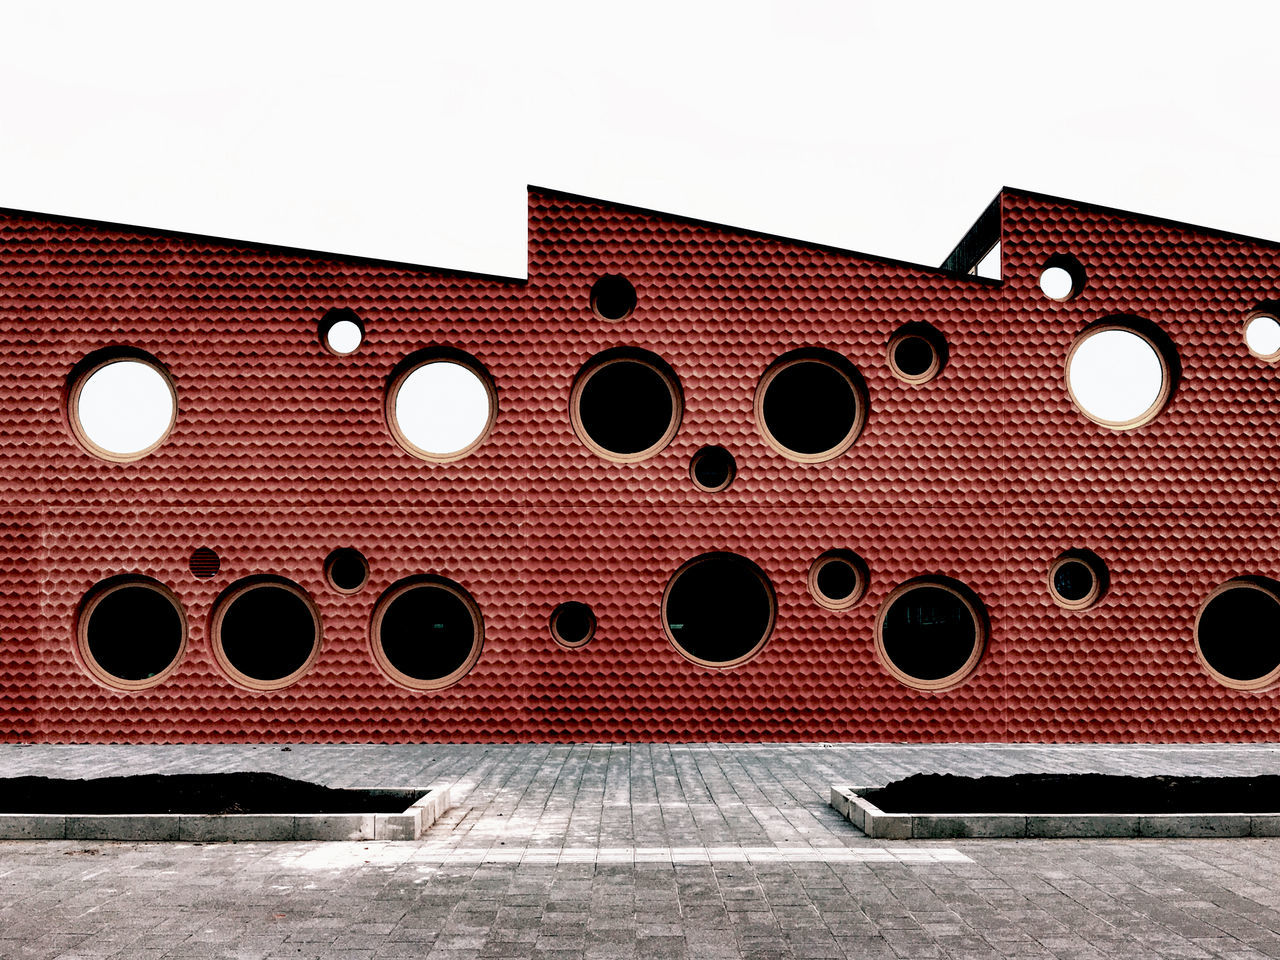 Braille. P112 Amsterdam Onephotoaday 365project Makemoments Walking Around Architecture Round Window School Reflection Modern Architecture The OO Mission